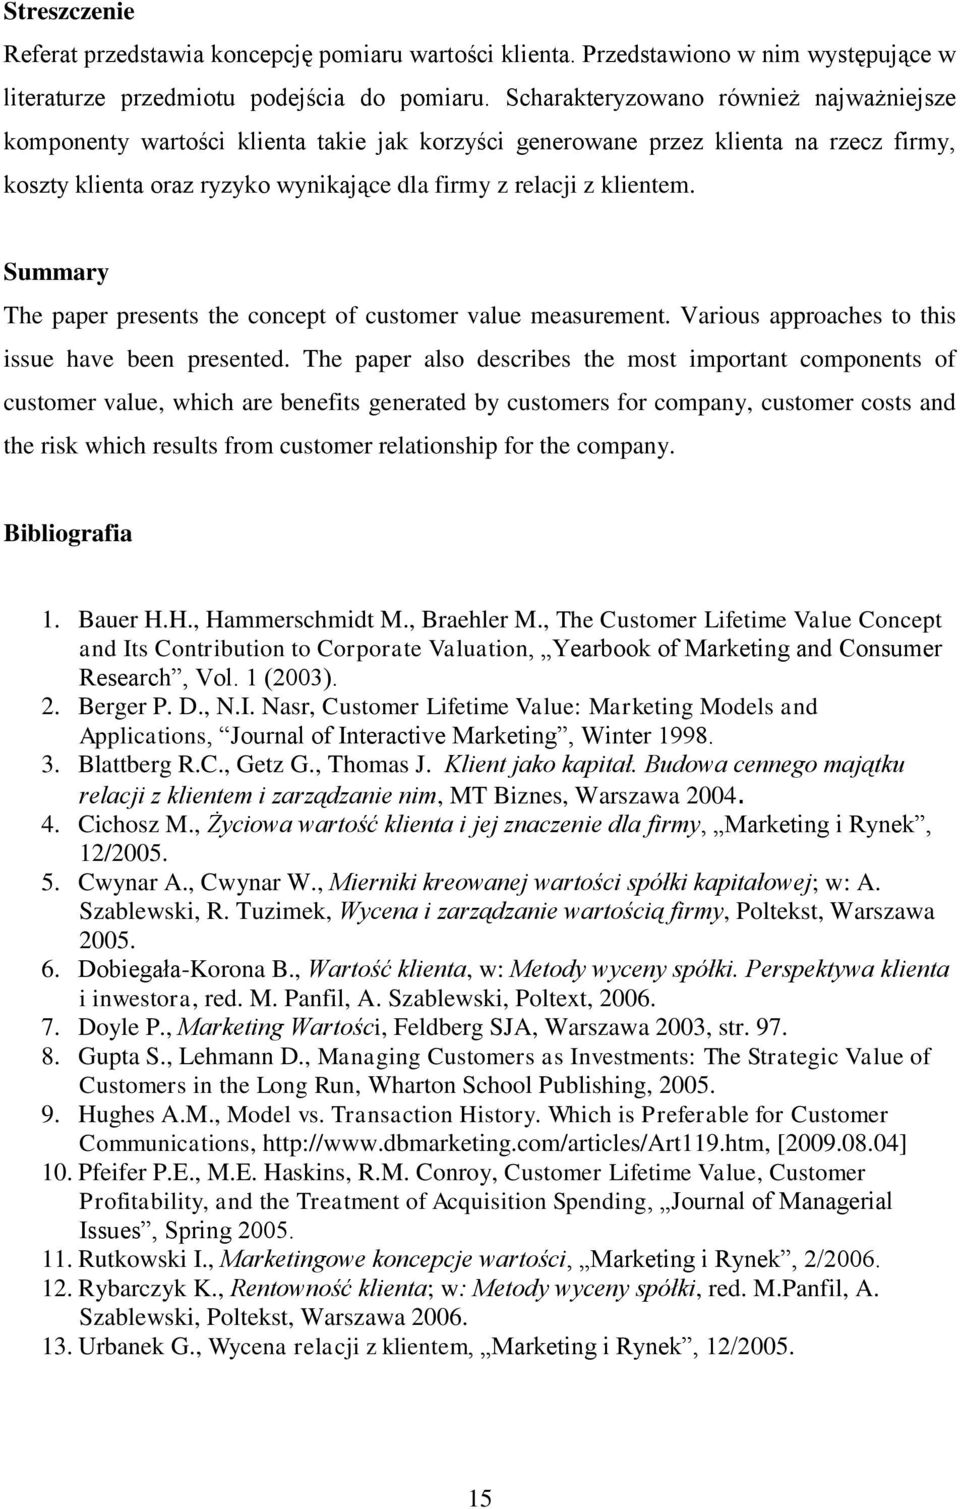 Summary The paper presens he concep of cusomer value measuremen. Varous approaches o hs ssue have been presened.